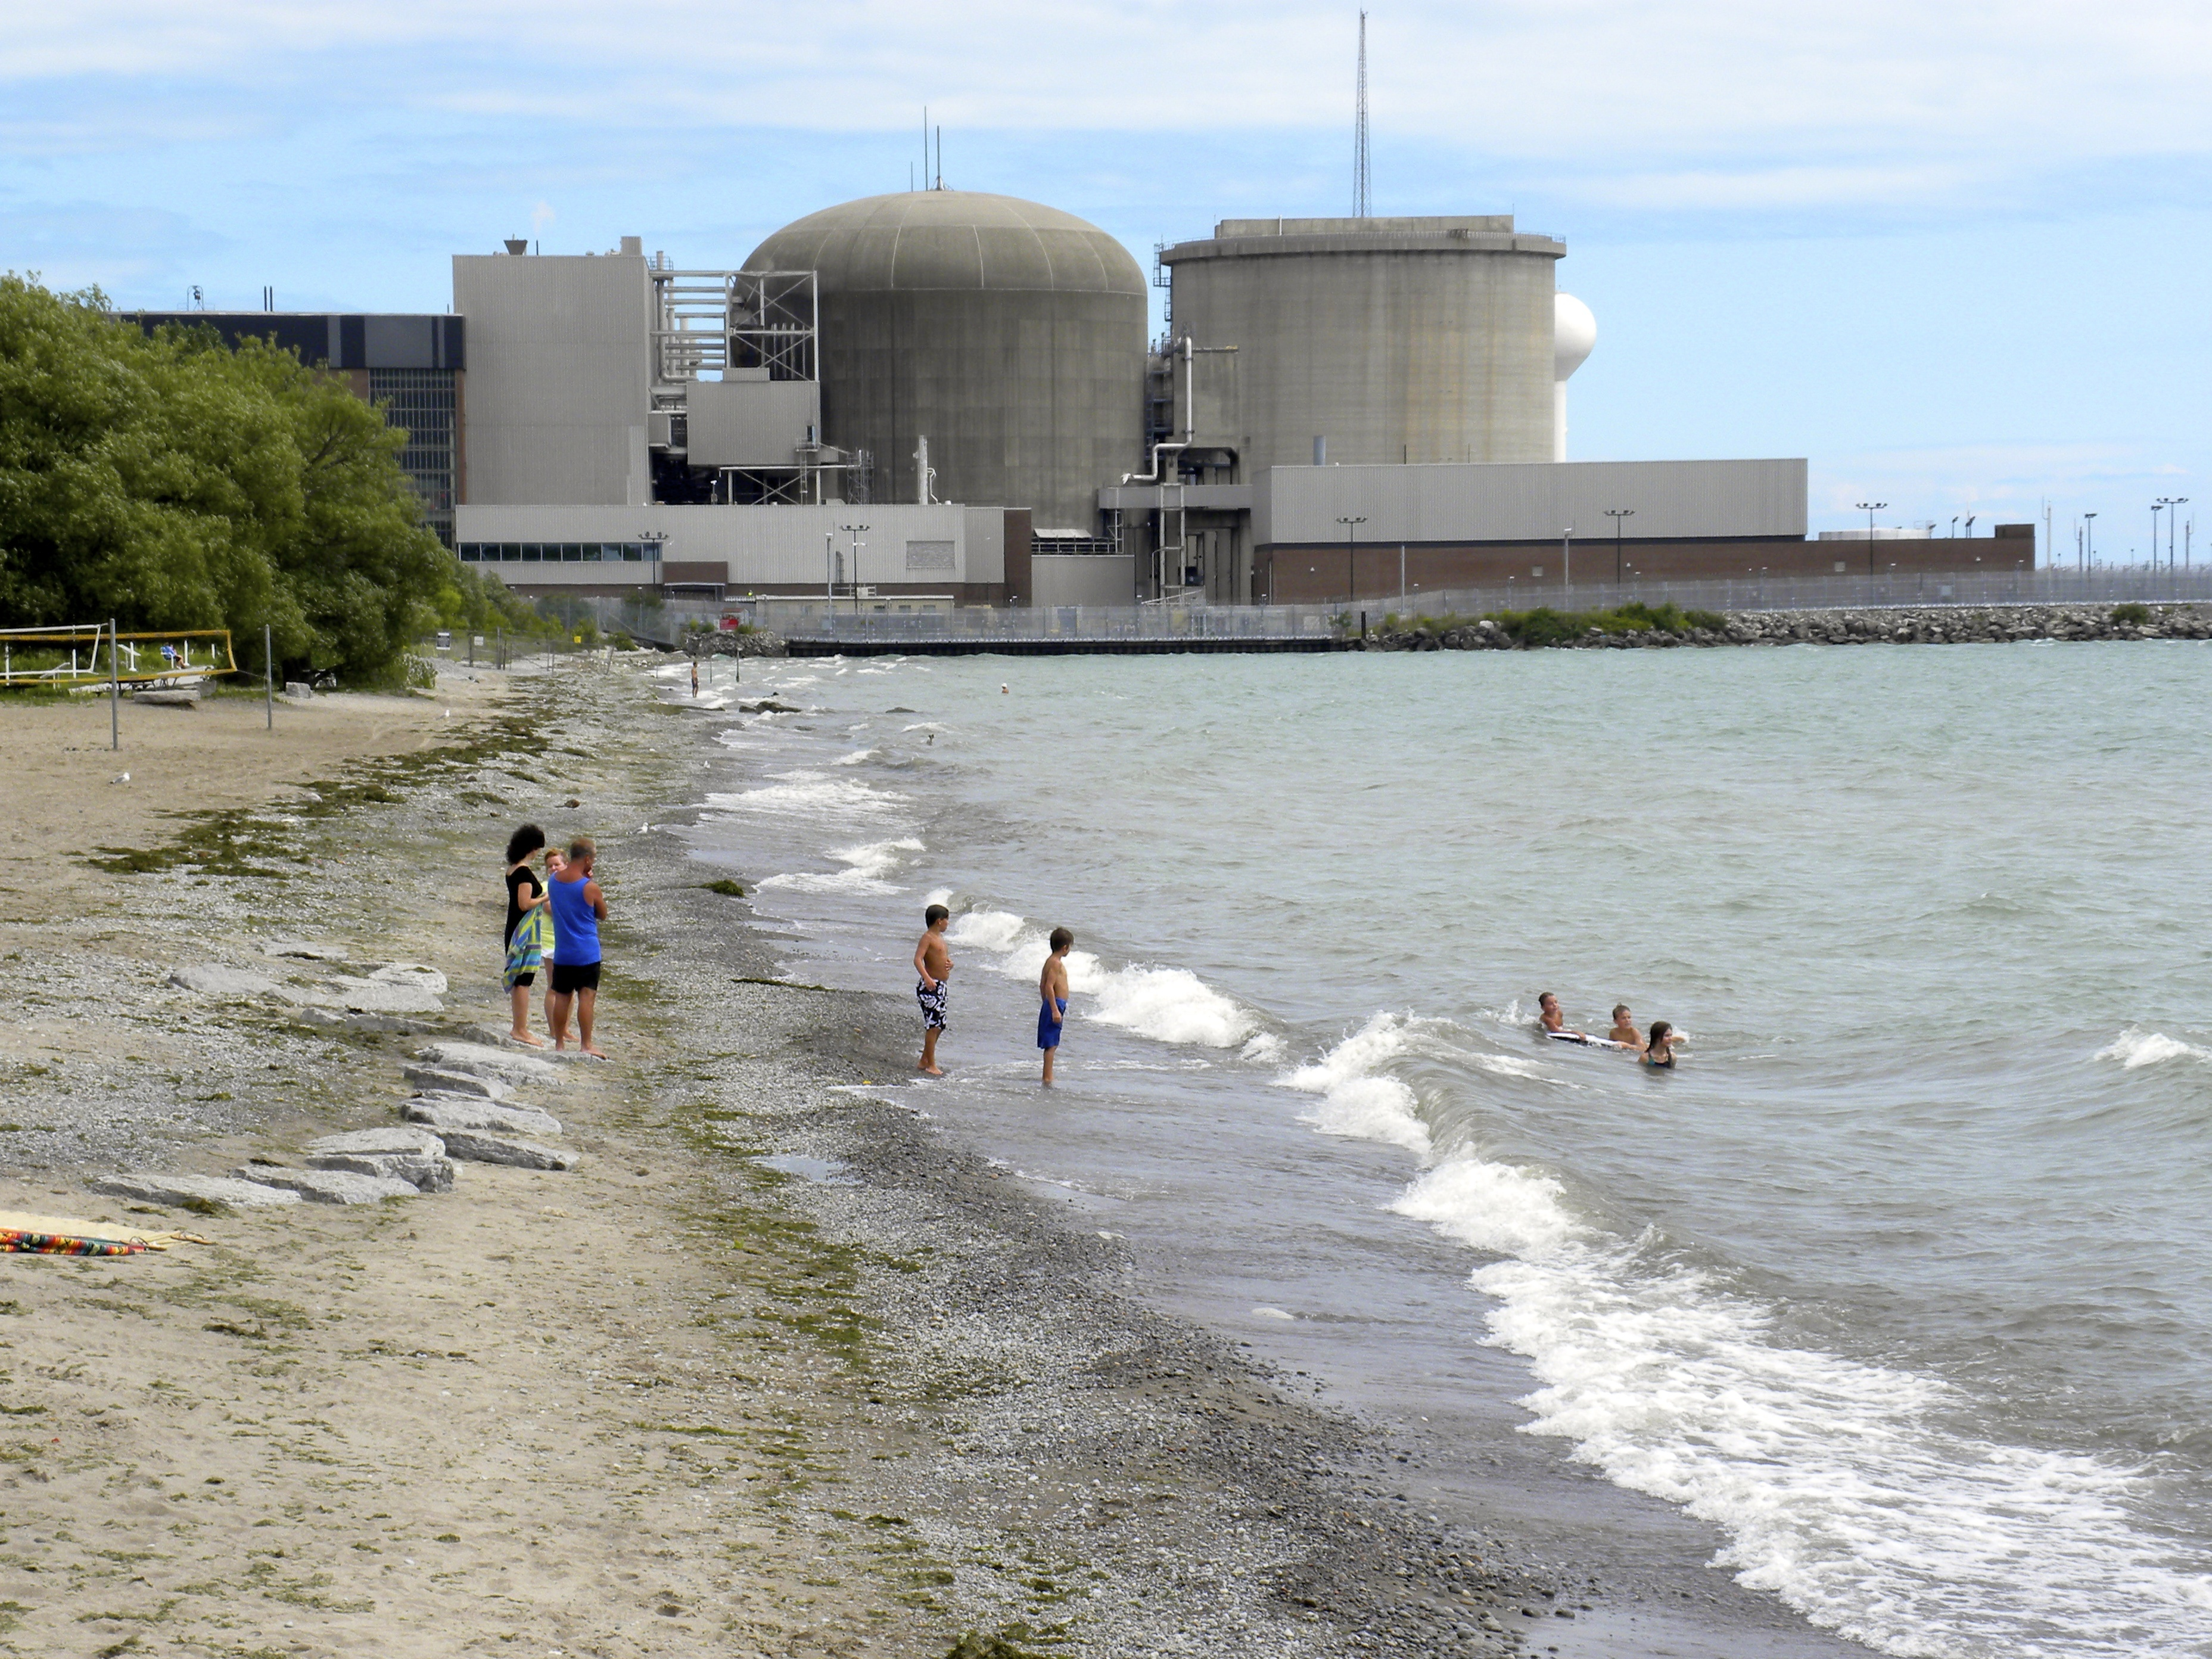 File:Frenchman's Bay and the Pickering Nuclear Plant -a.jpg ...